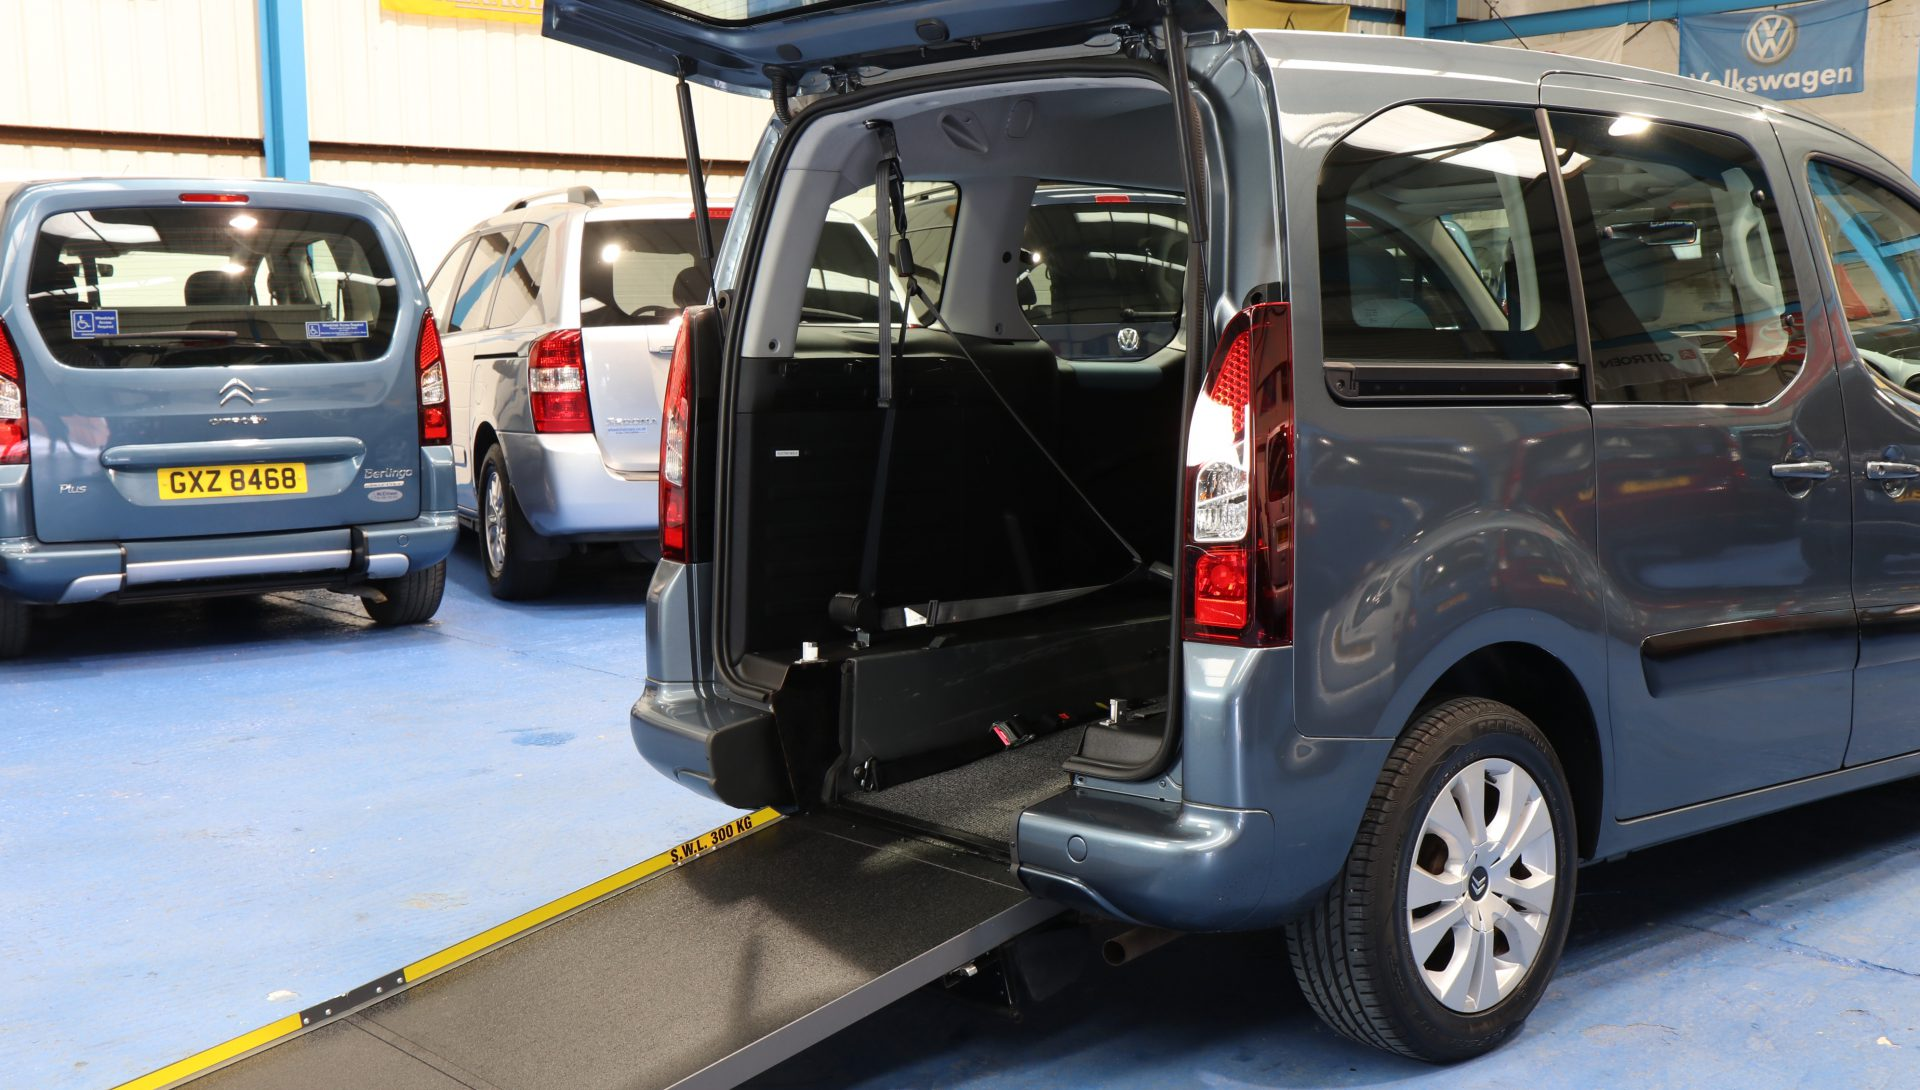 Berlingo Wheelchair accessible car wa13egk